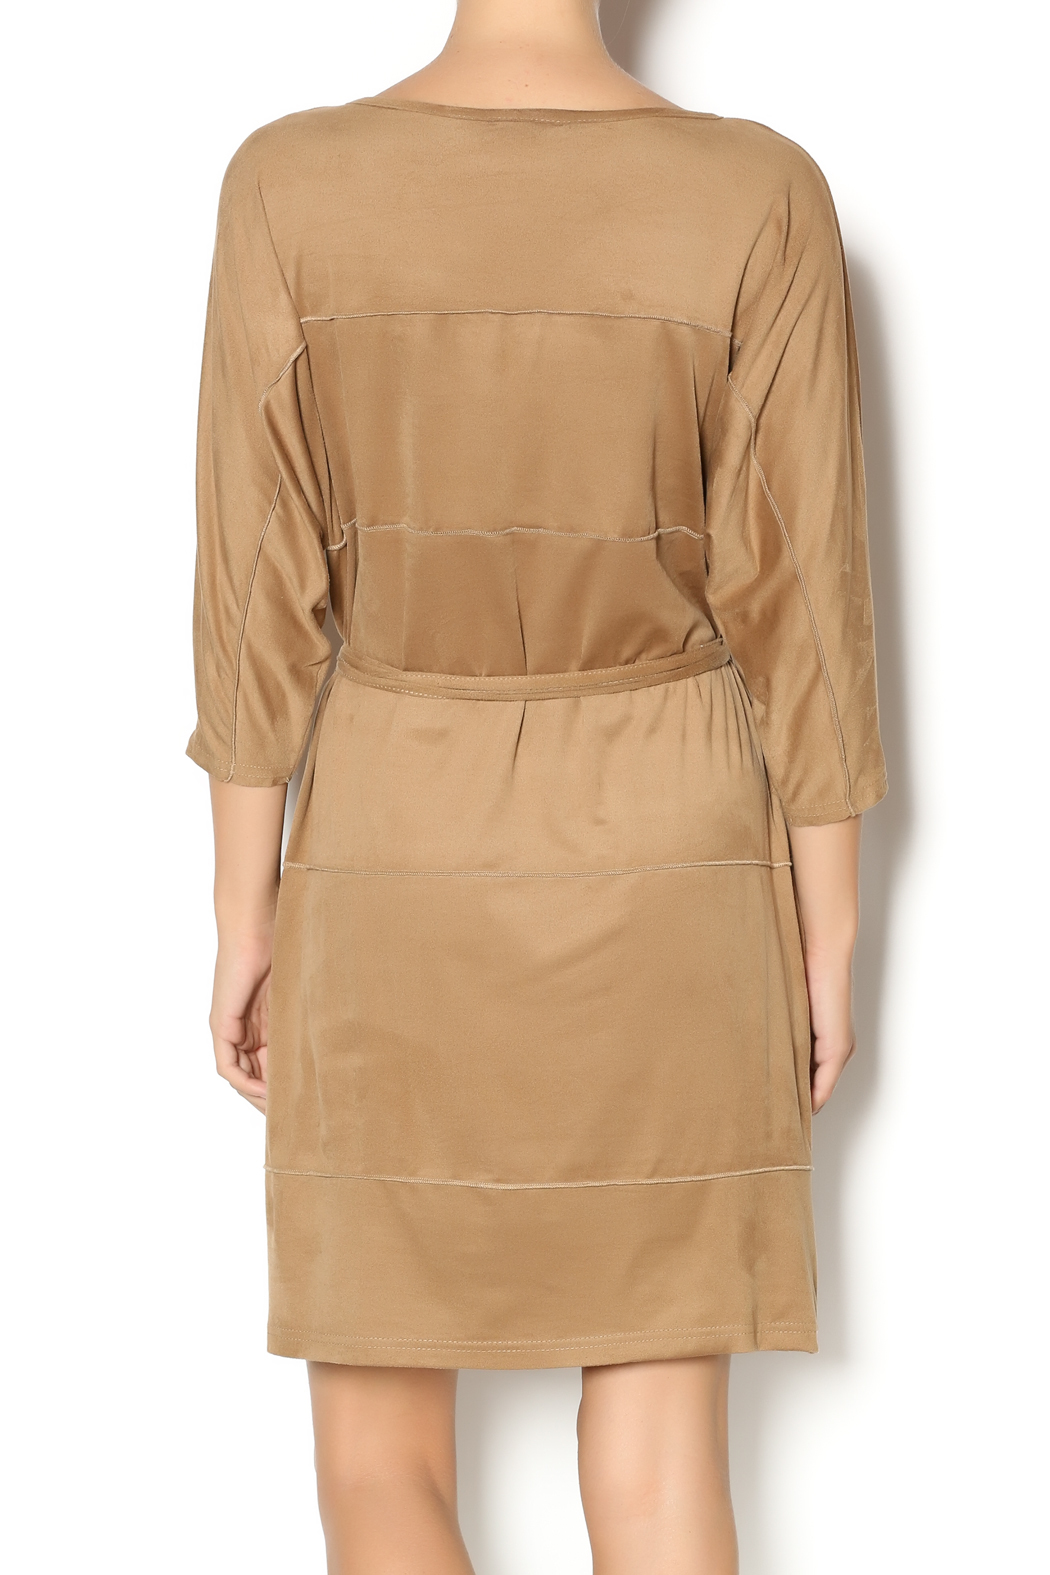 MSK Faux Suede Dress - Back Cropped Image